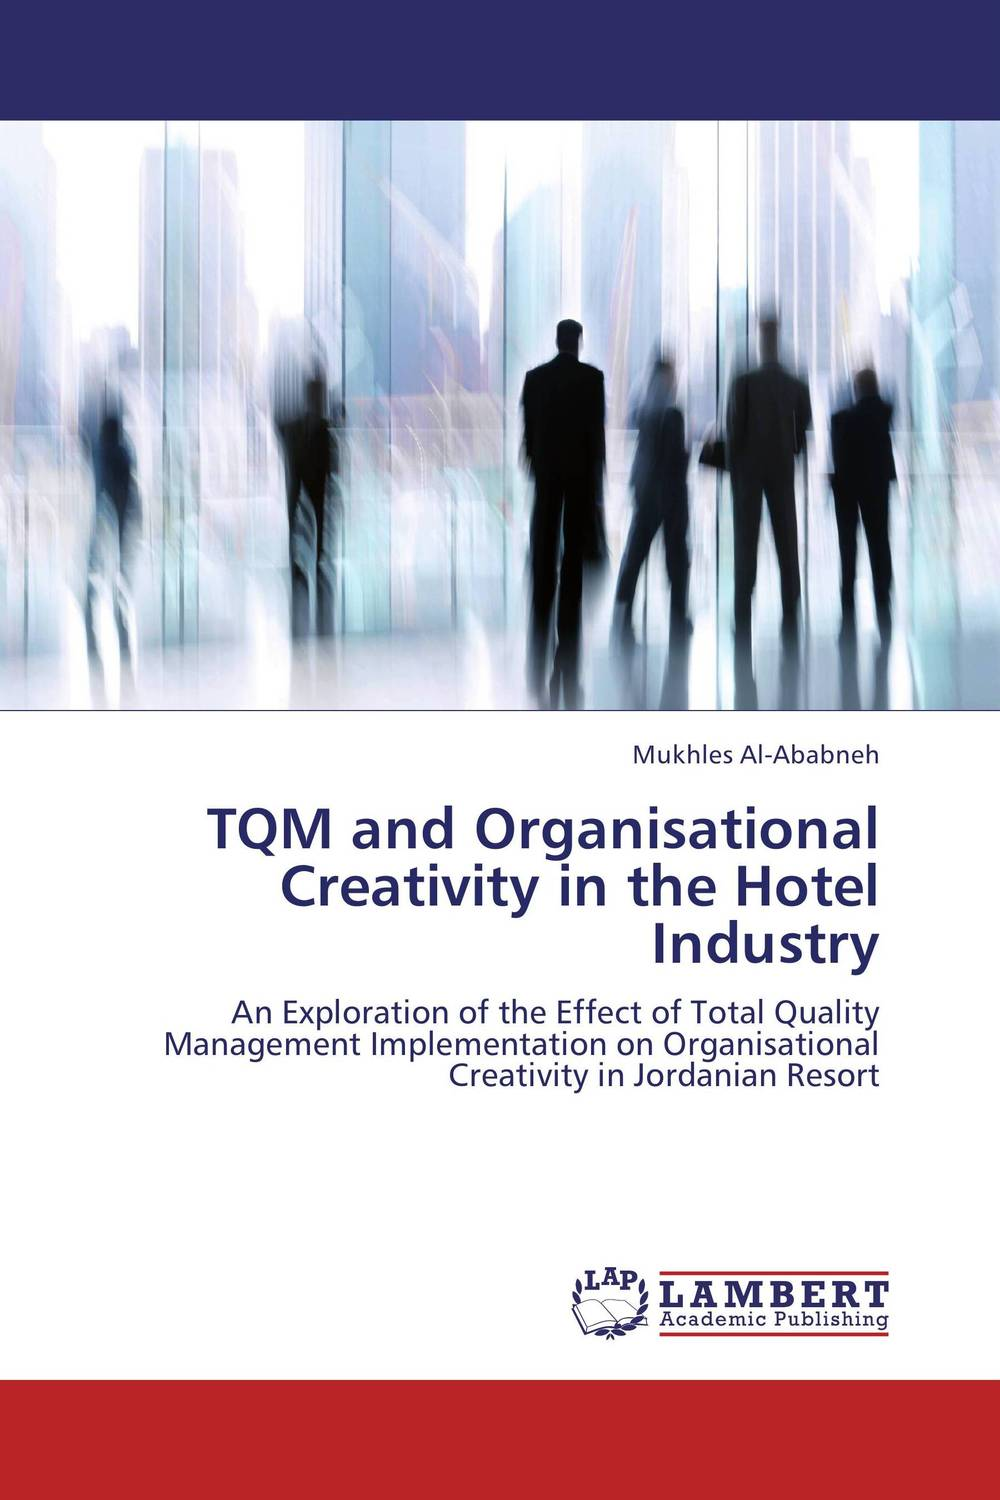 TQM and Organisational Creativity in the Hotel Industry стол журнальный робер 2м